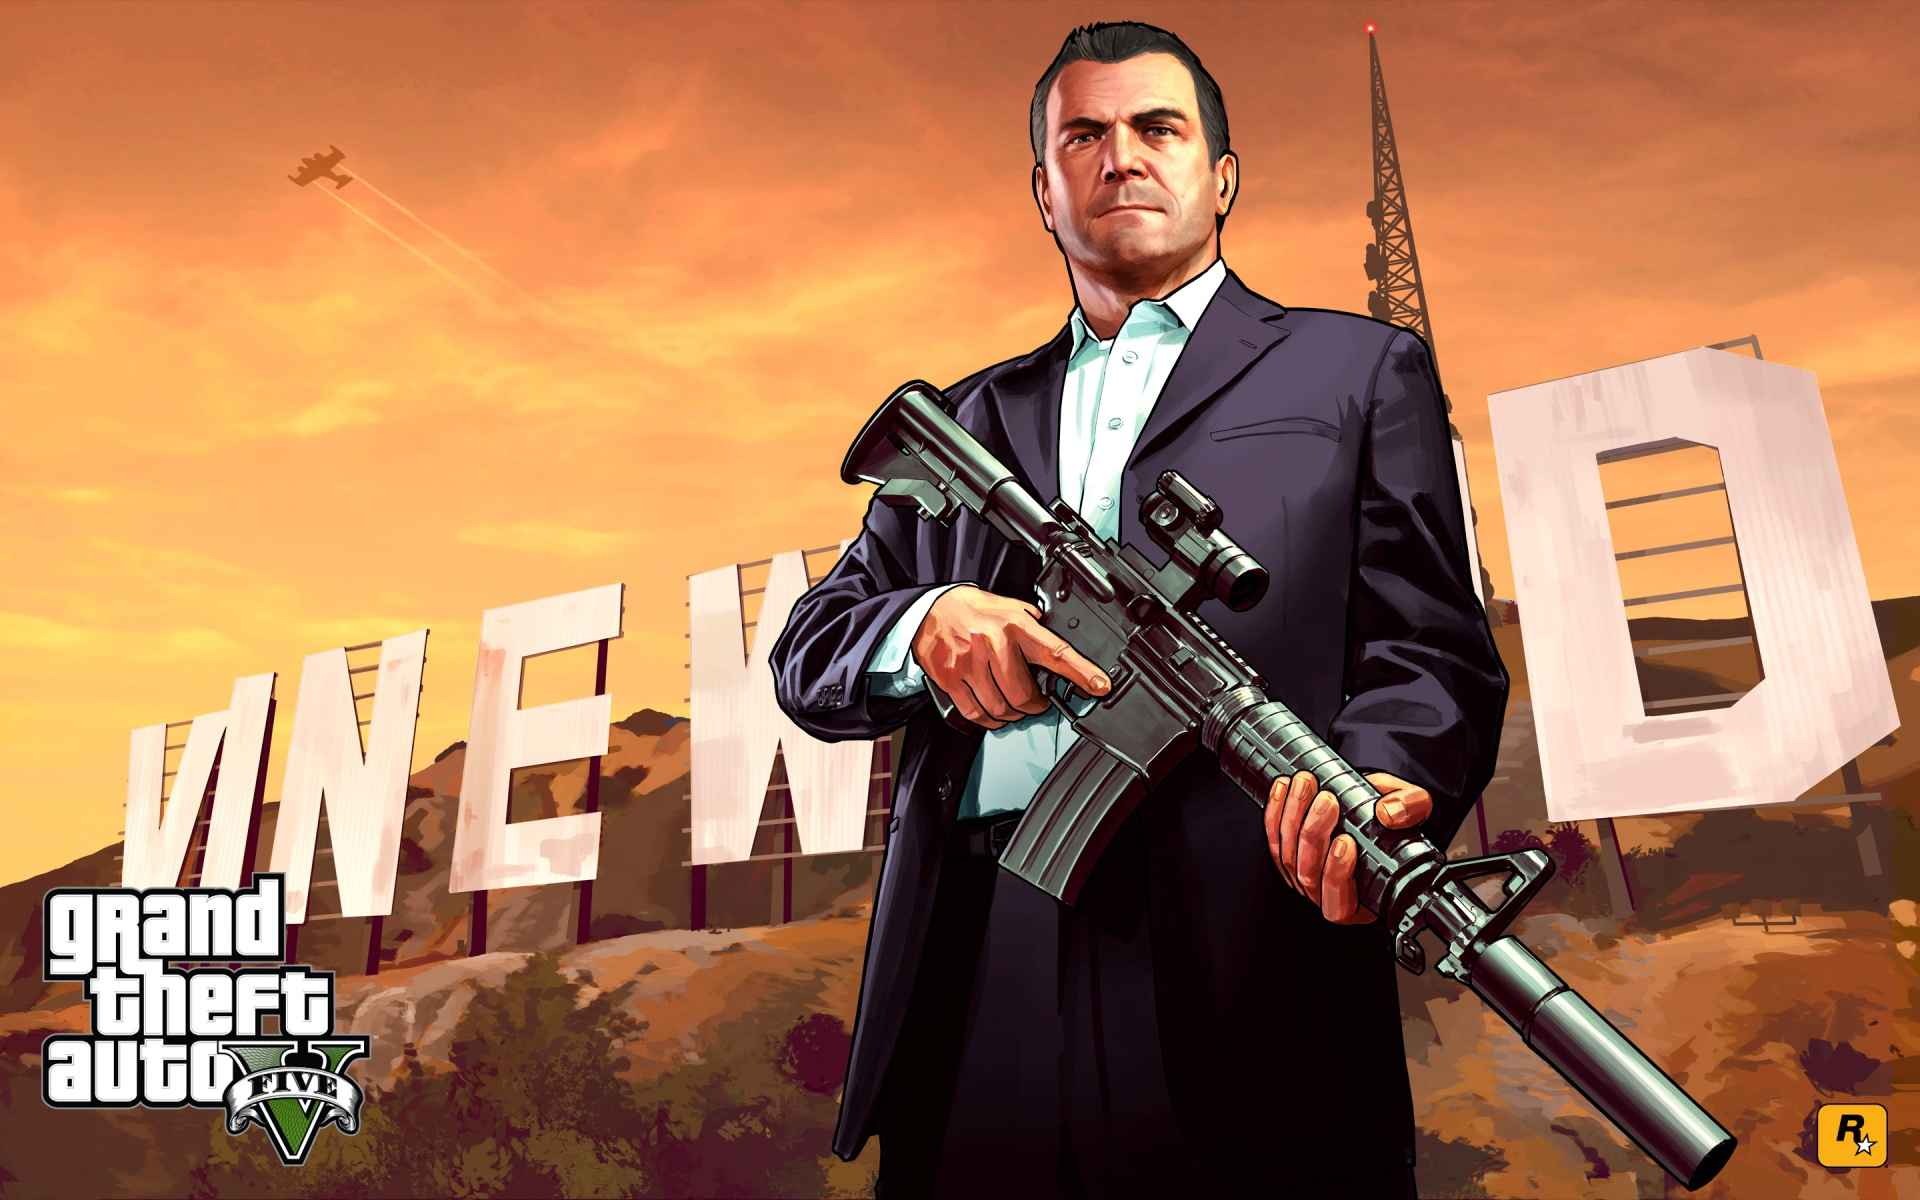 Game Grand Theft Auto V Wallpaper 066